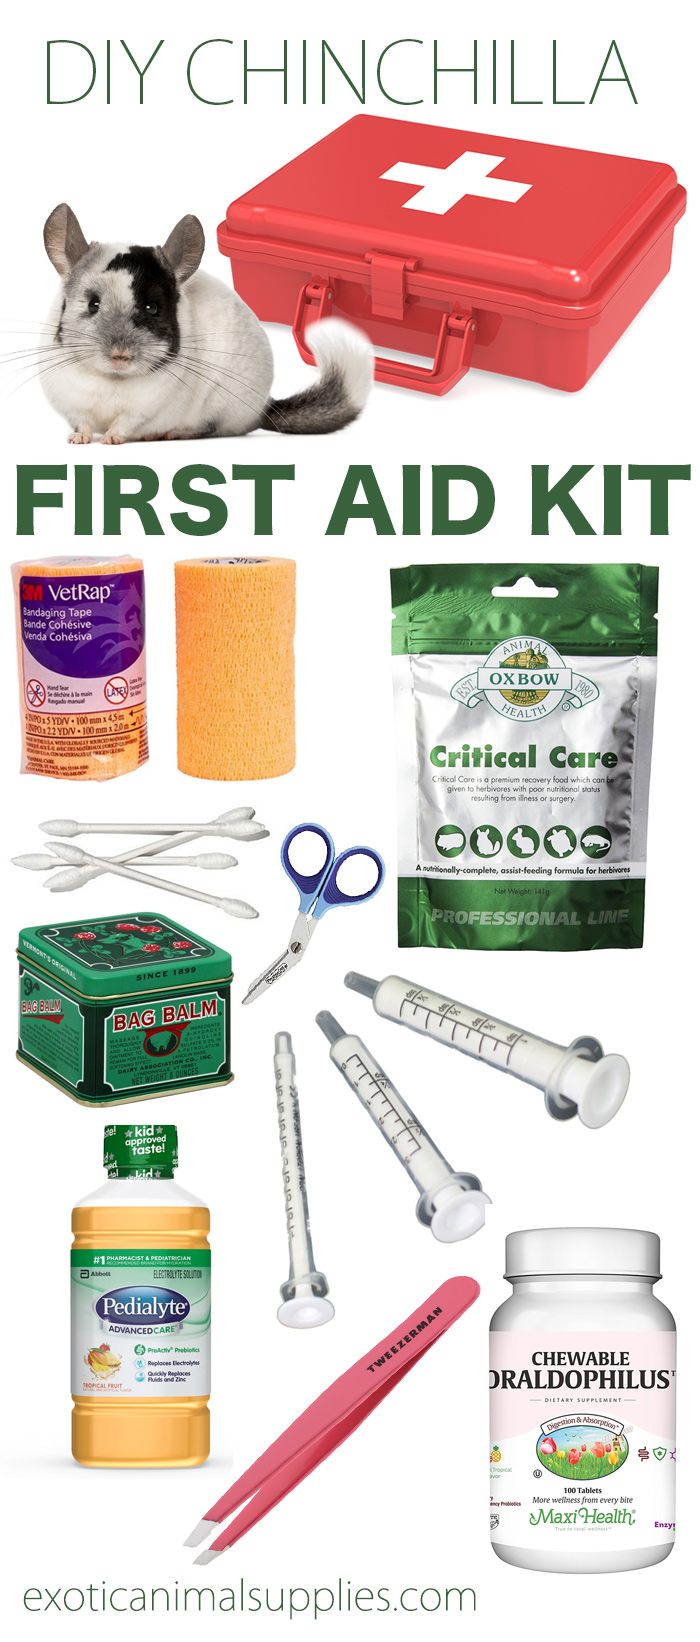 Everything You Need for a DIY Chinchilla First Aid Kit